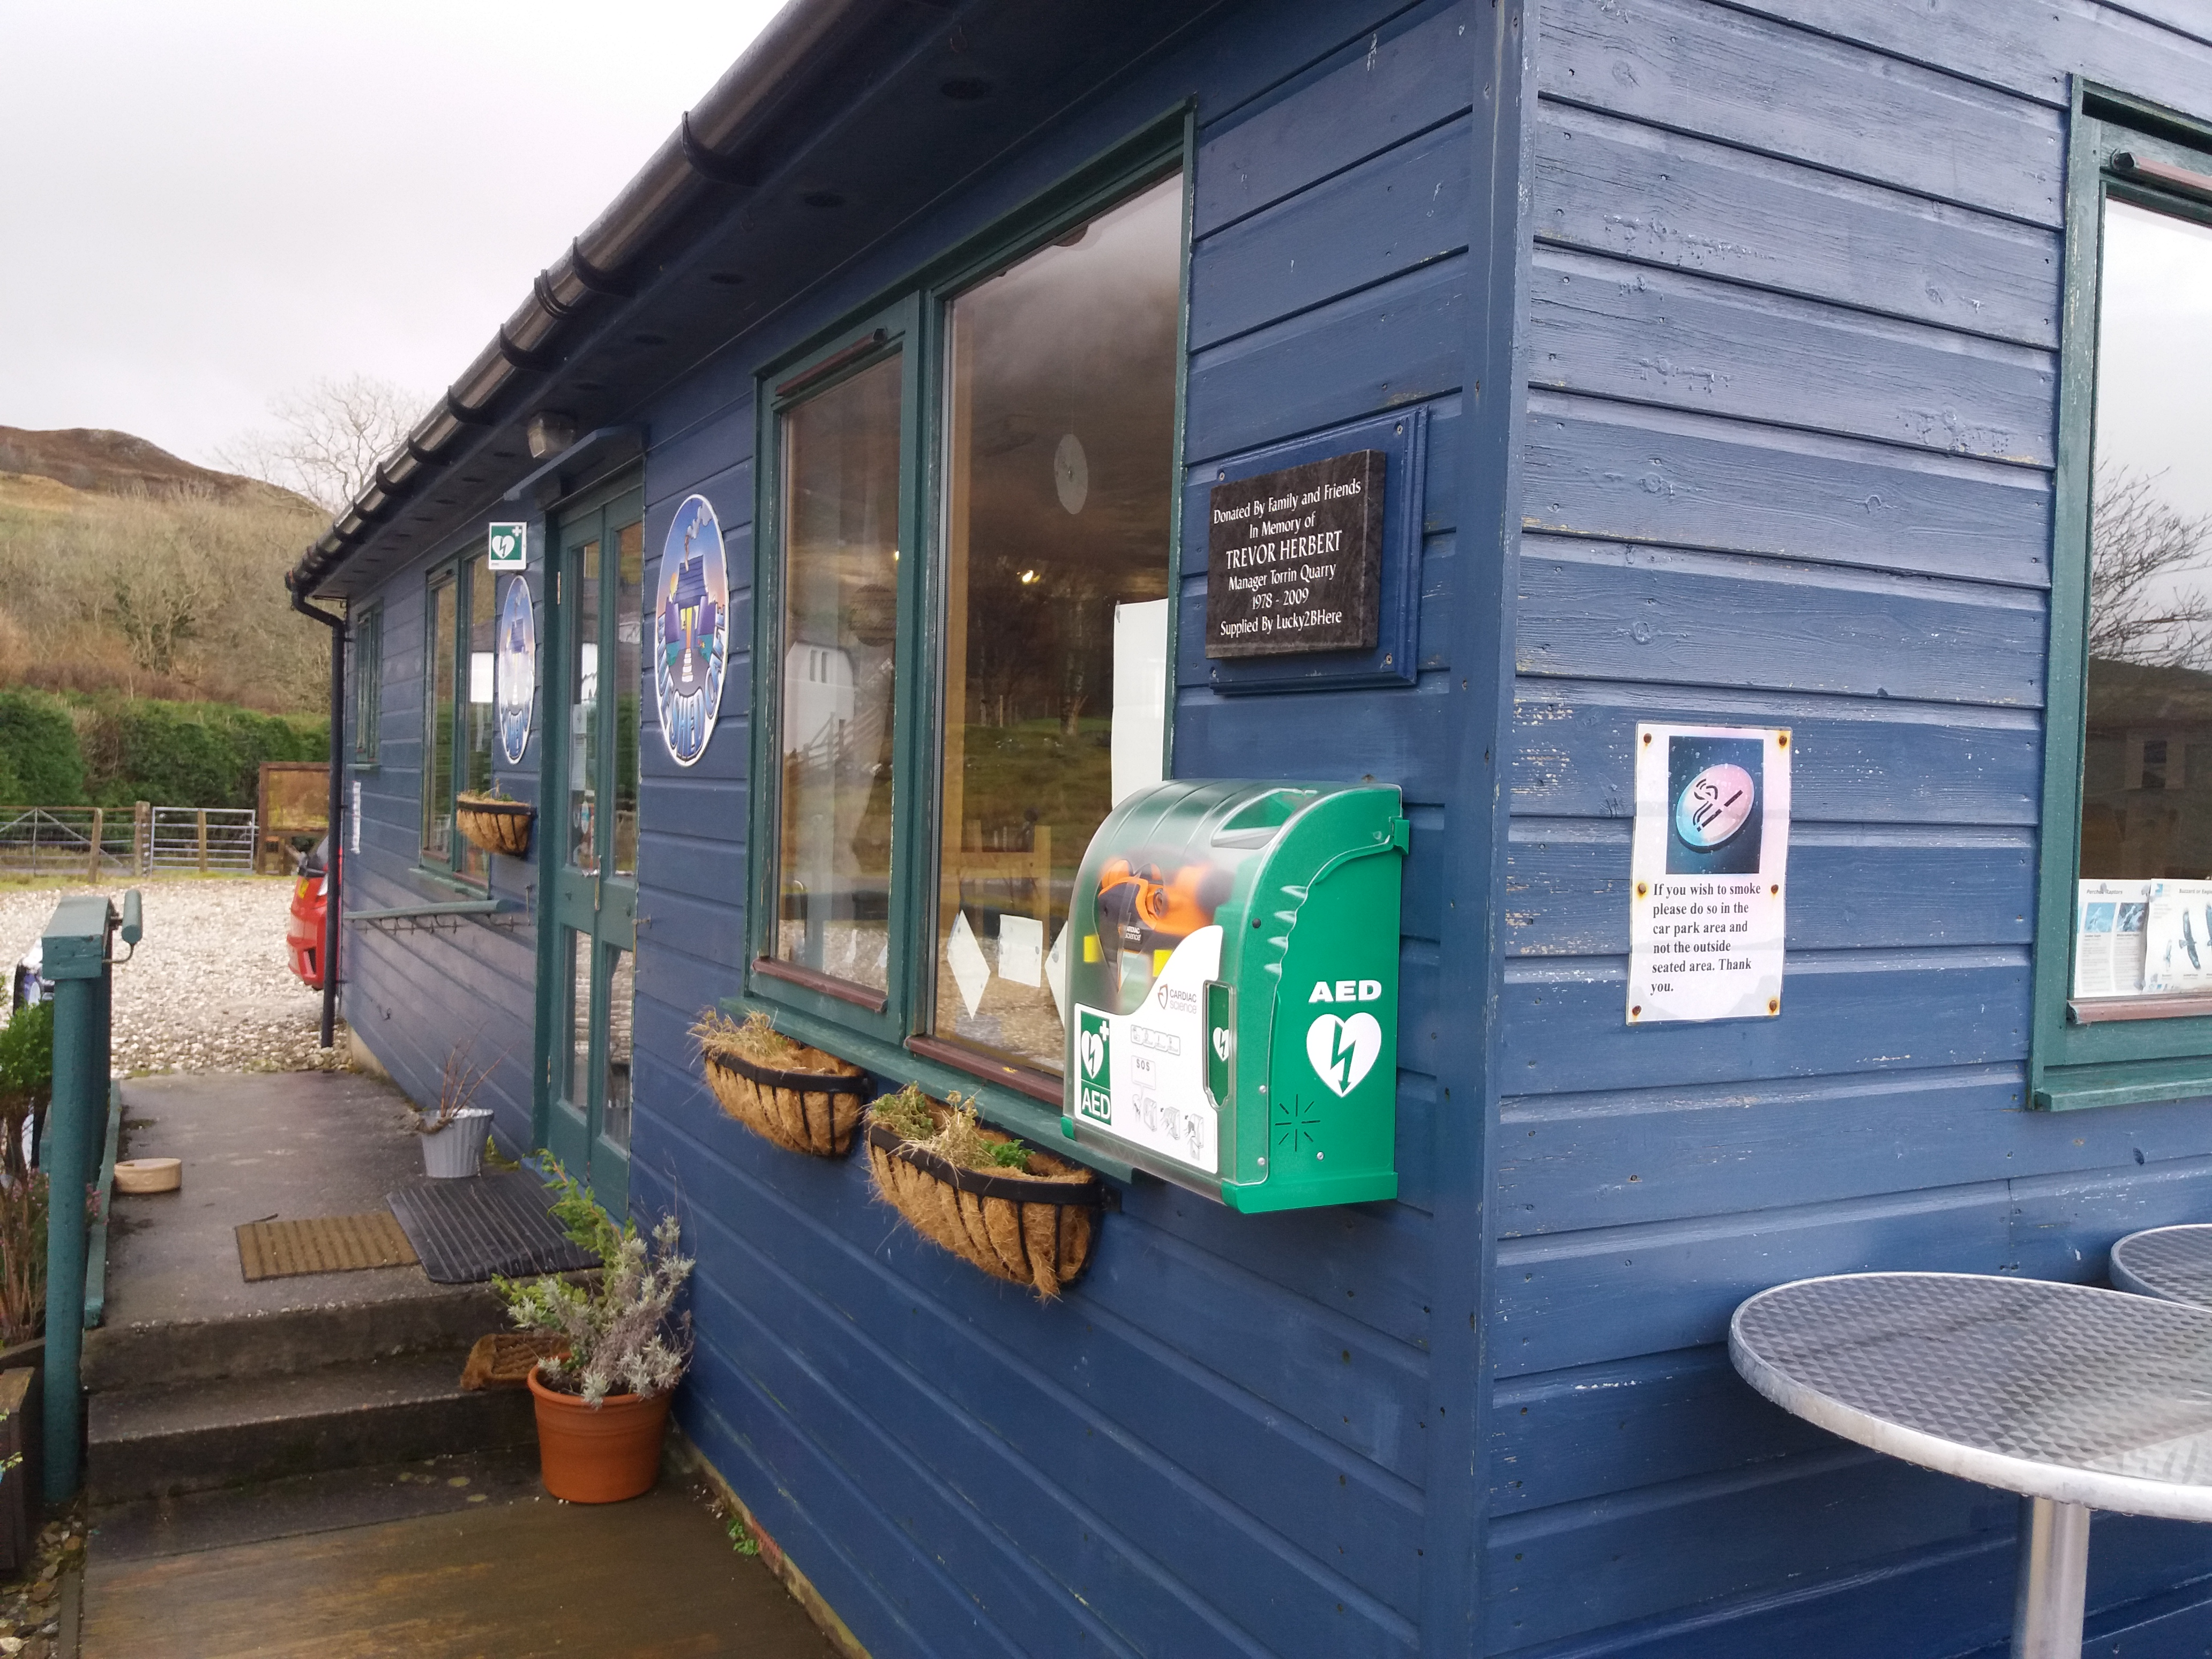 Defib at Blue Shed Cafe